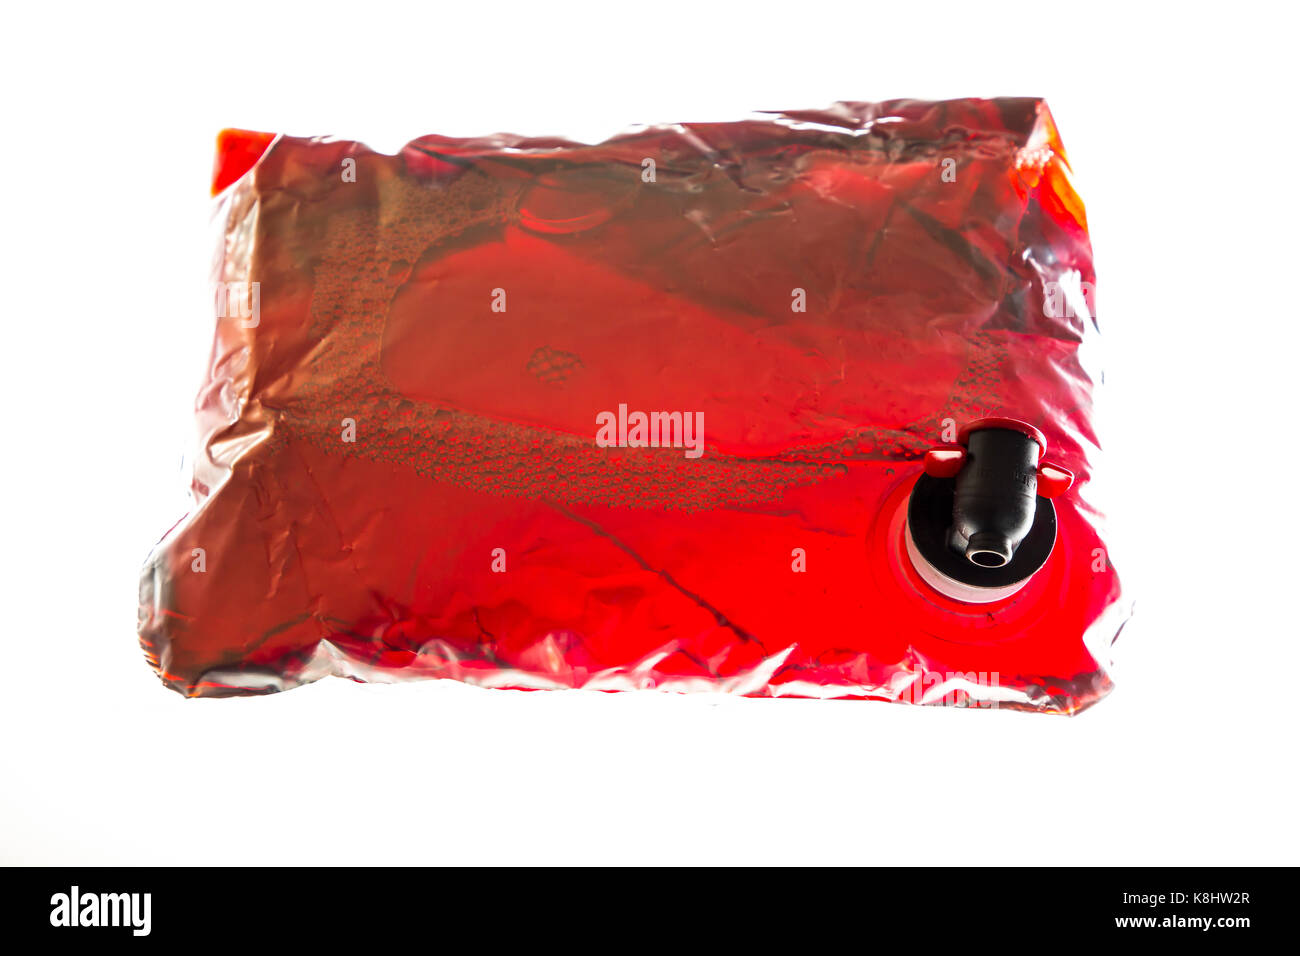 Wine pack, plastic bag, filled with red wine, convenient packaging, 5 Liter volume, tap device, - Stock Image